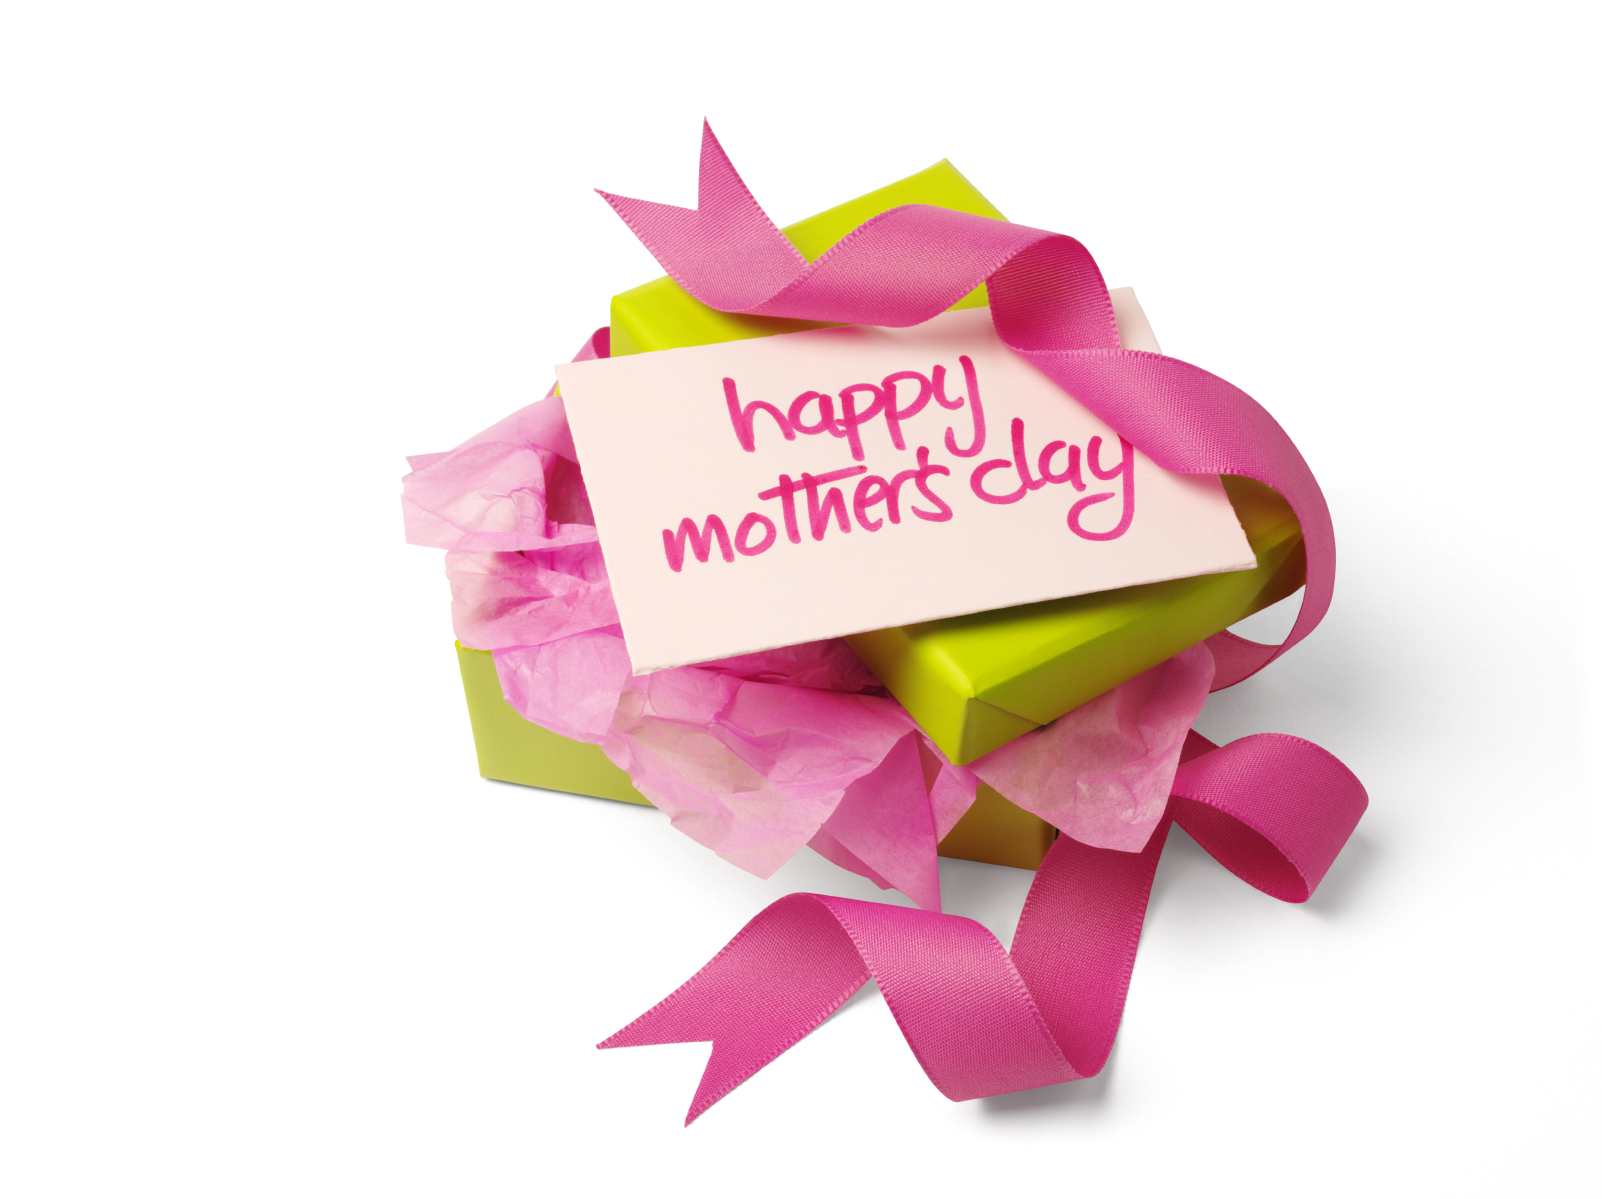 mothers day gifts Find the perfect gift for mom this mothers day with our wide assortment of mothers day gifts and gift ideas.